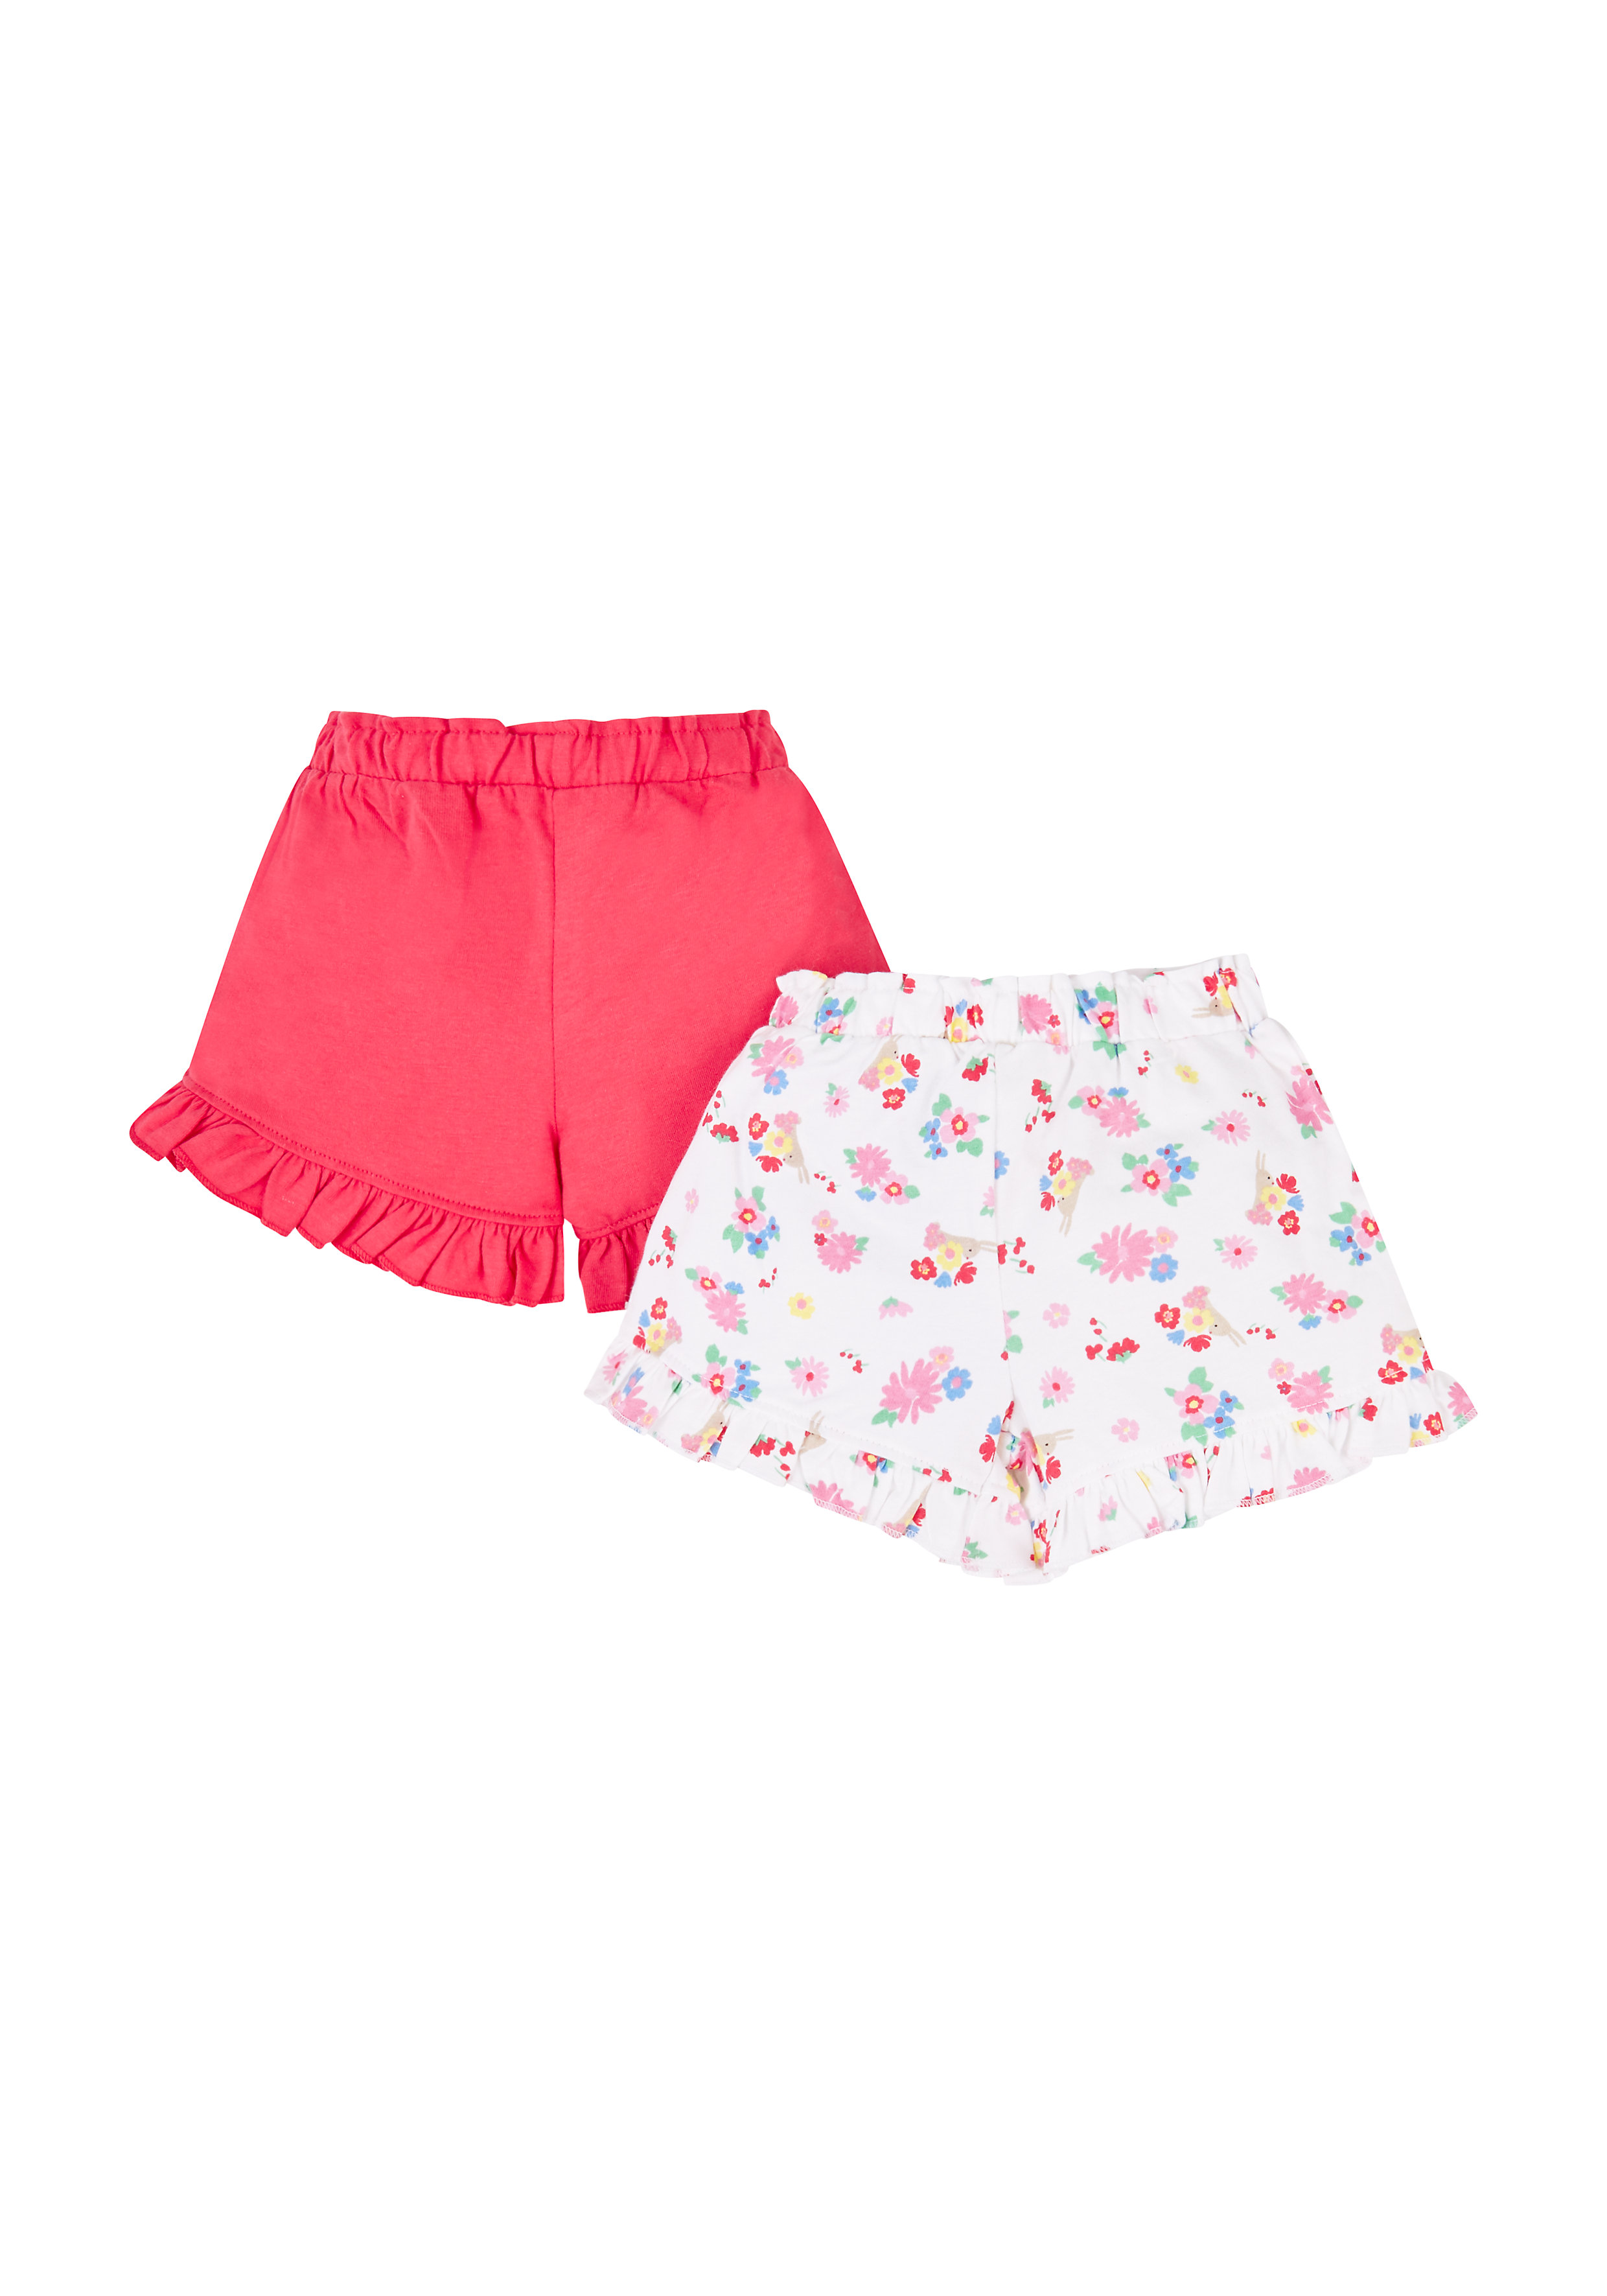 Mothercare | Red and White Printed Shorts - Pack of 2